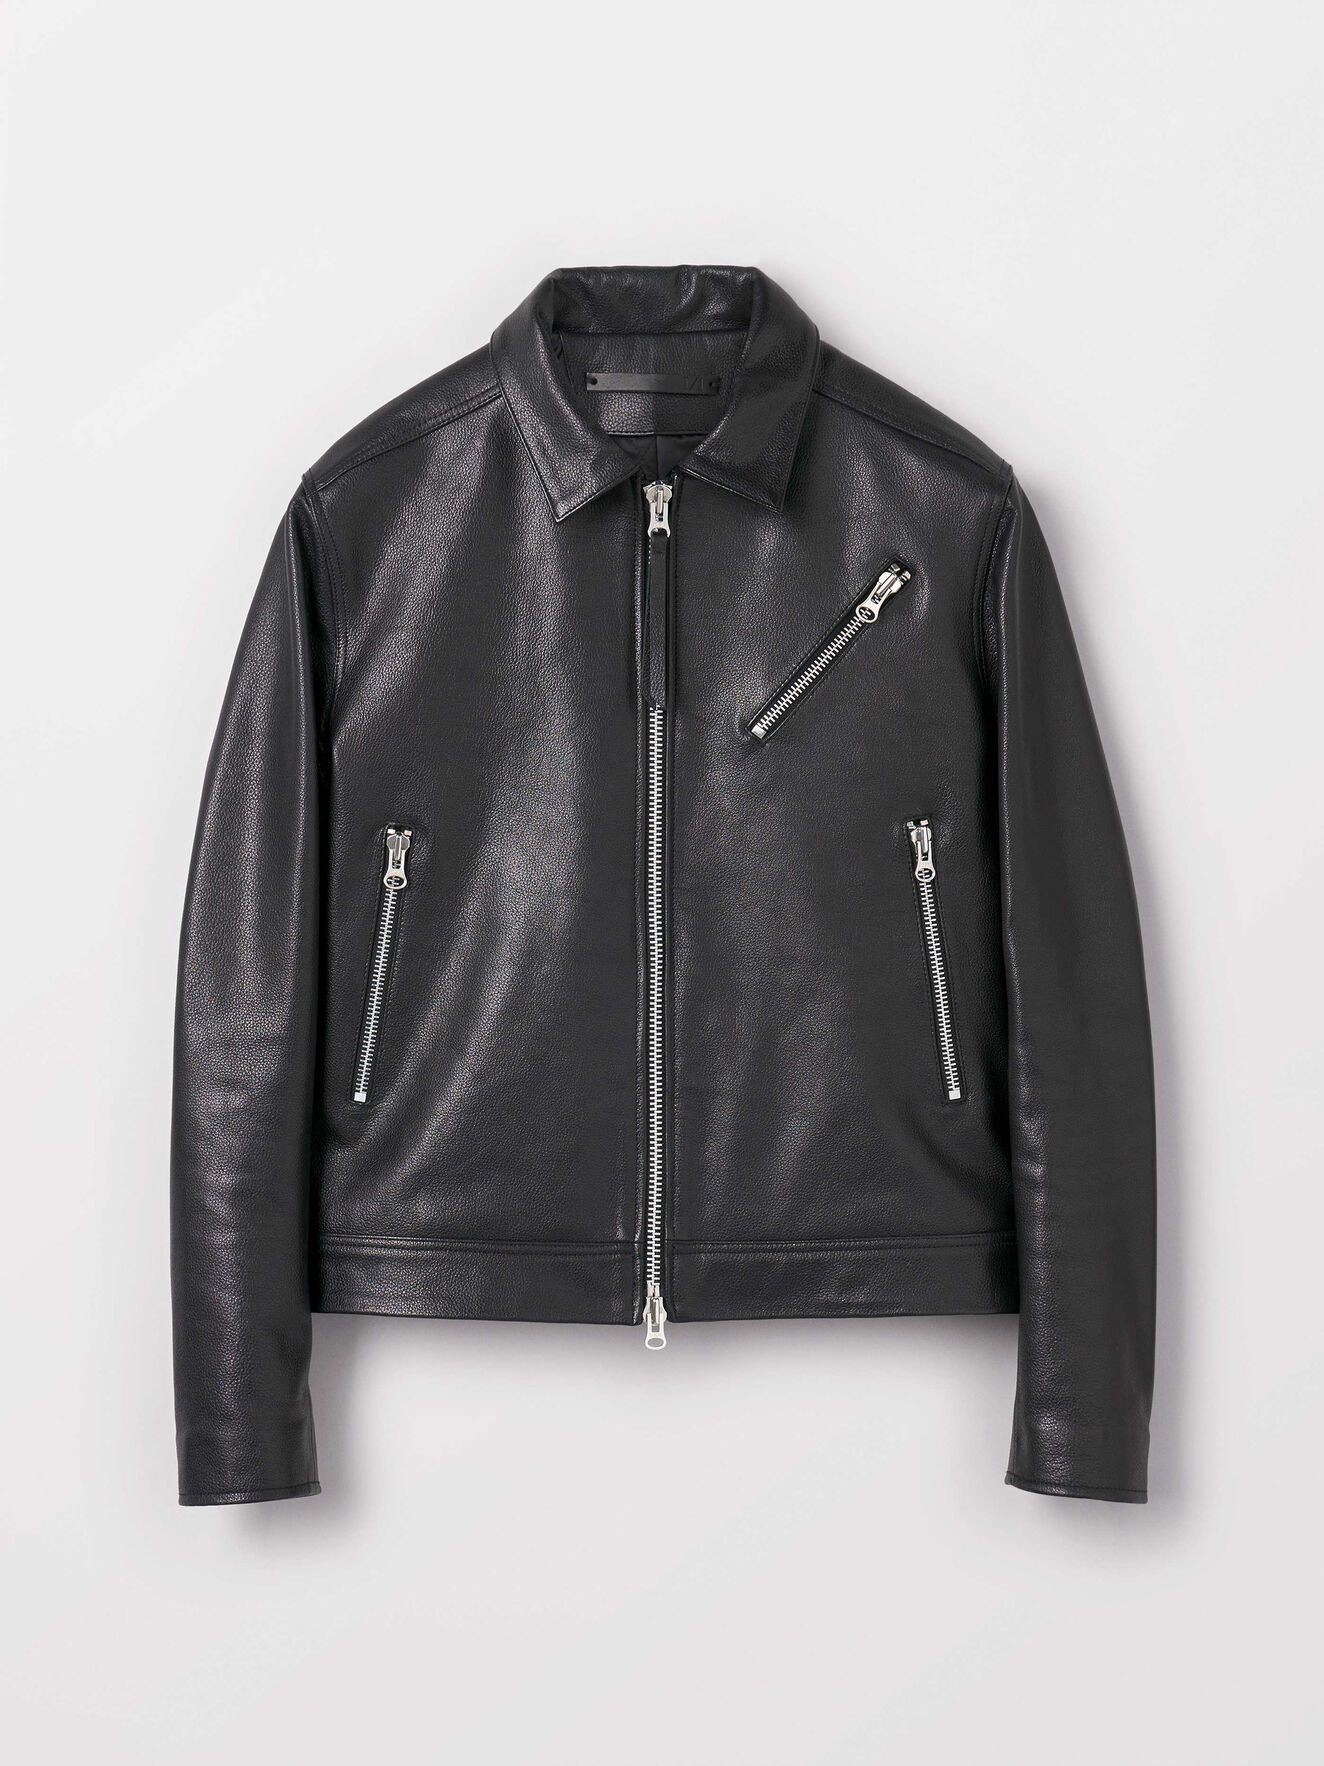 Tracker Jacket in Black from Tiger of Sweden